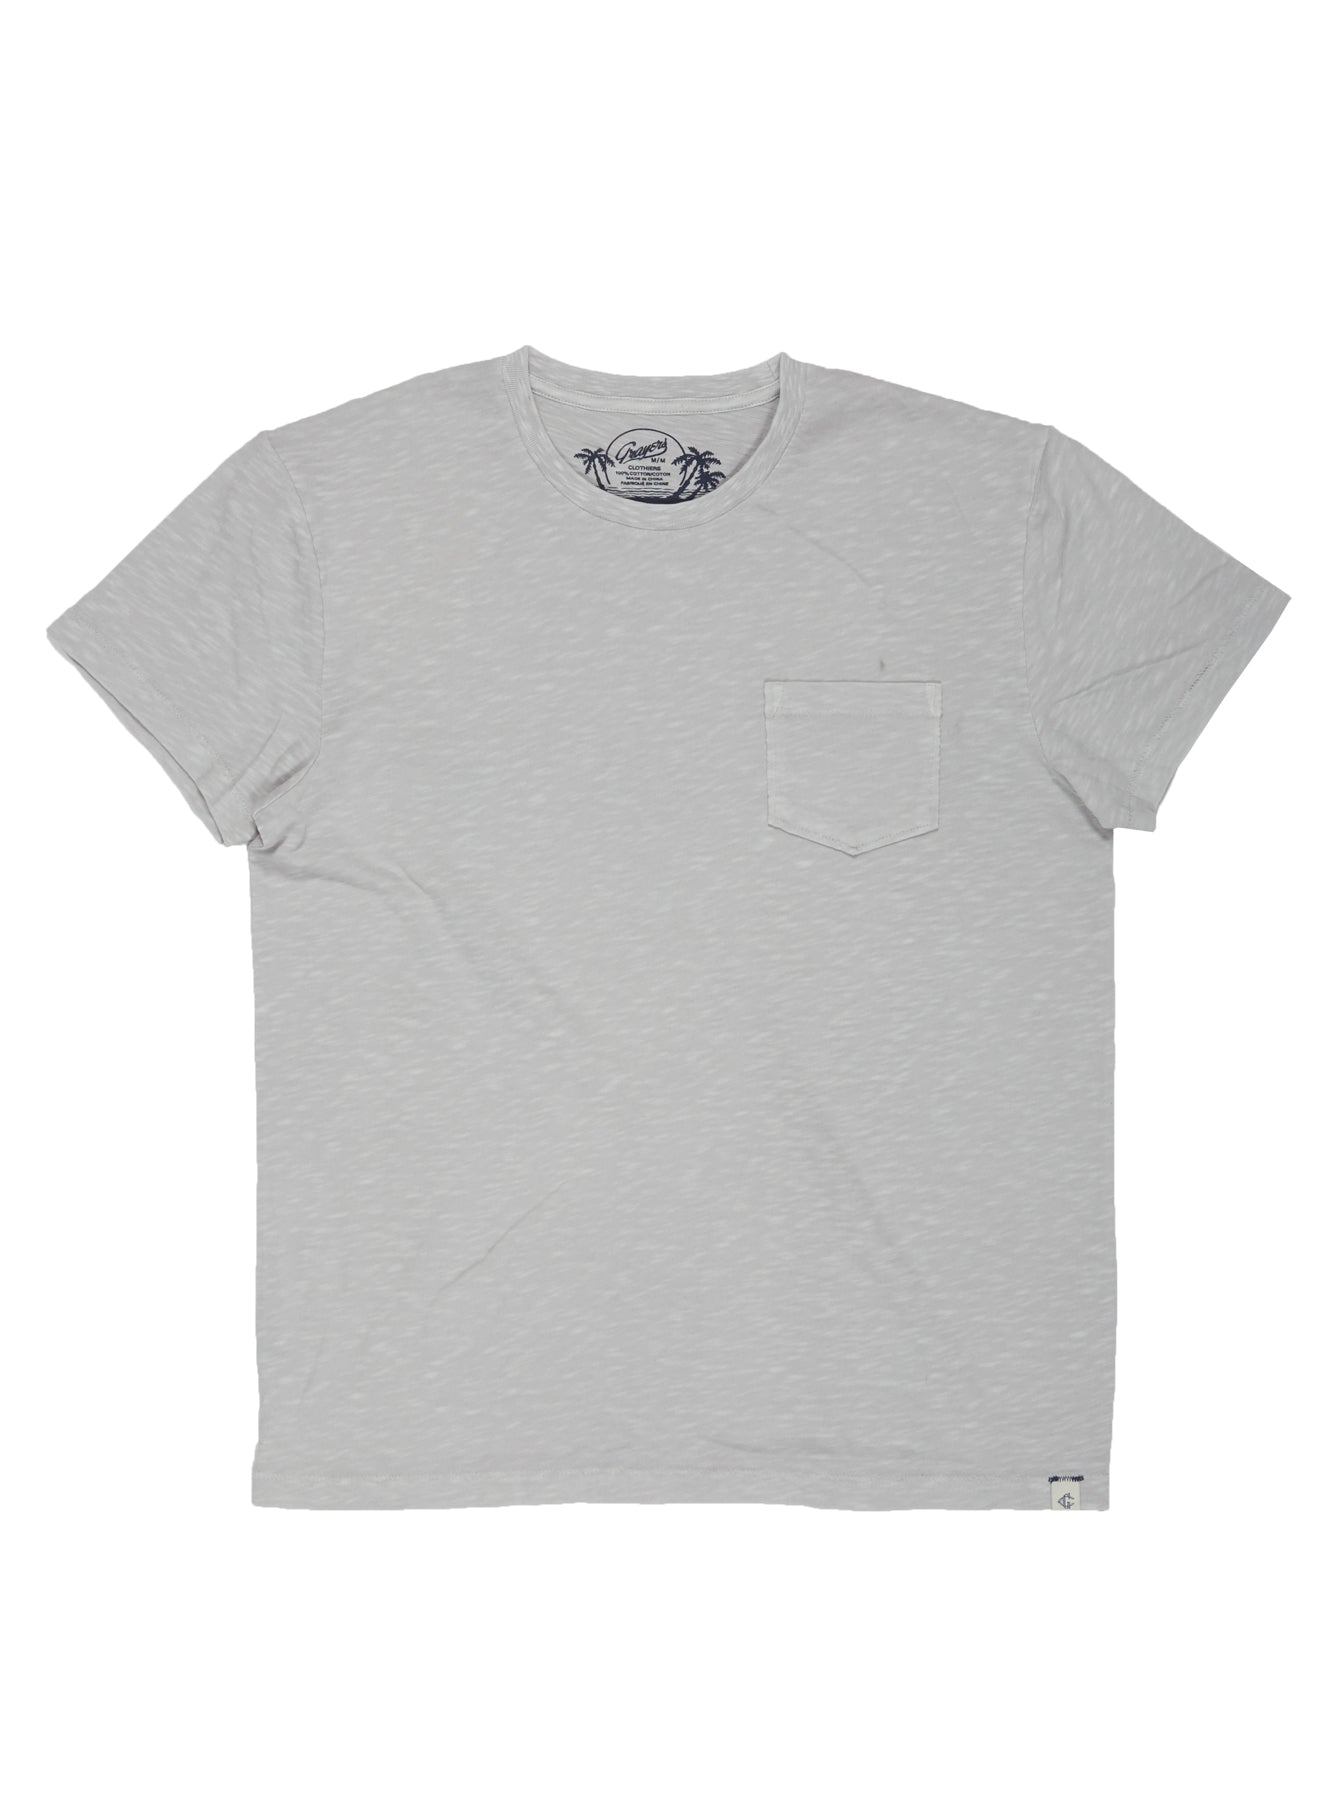 Madison Loose Knit Tee- Micro Chip